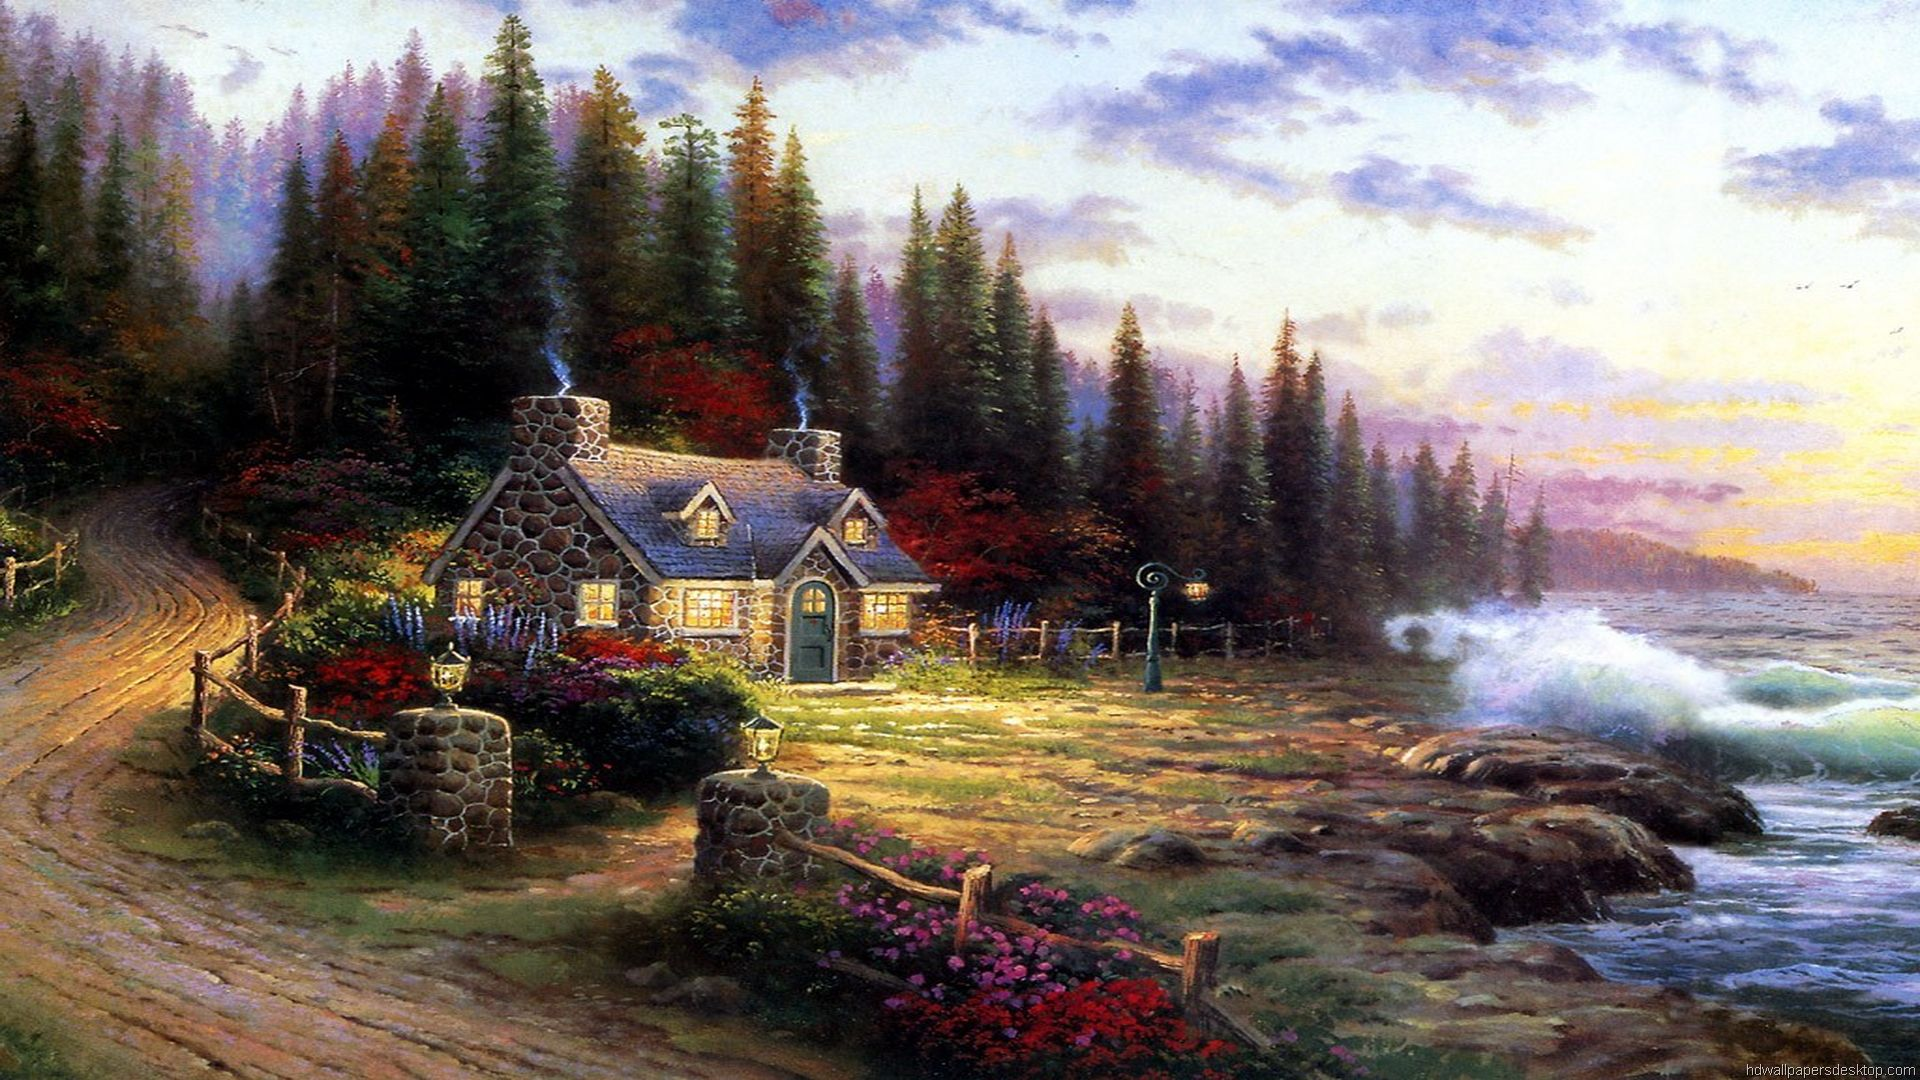 Thomas Kinkade Rural Landscape Painting